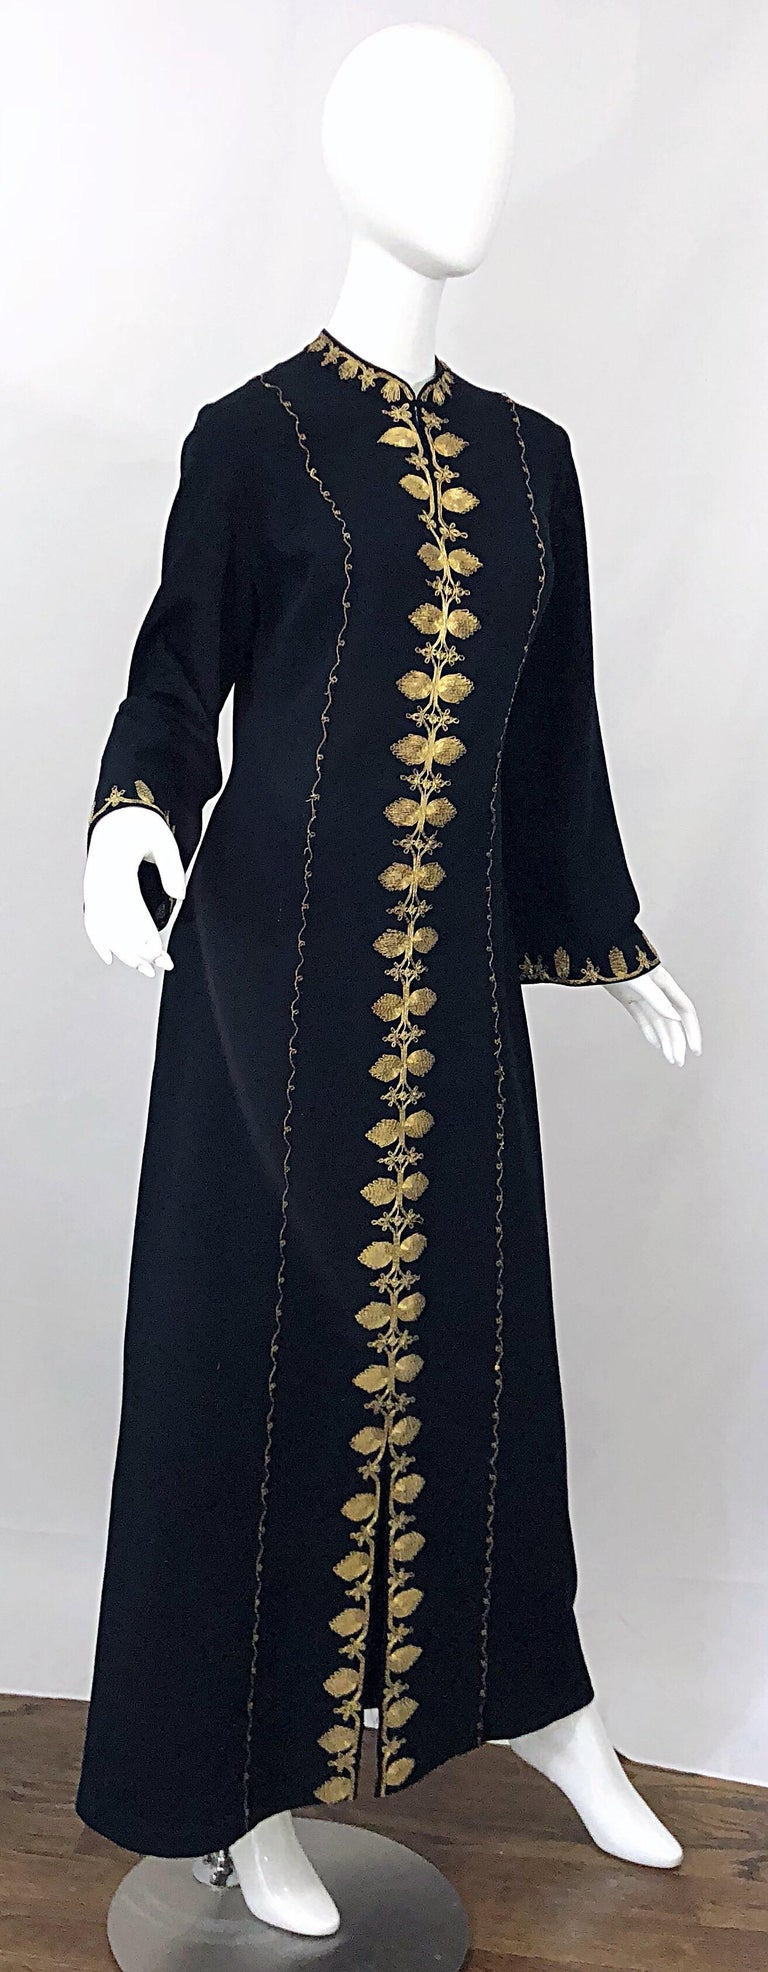 1970s Moroccan Black + Gold Metal Embroidered Vintage 70s Caftan Maxi Dress For Sale 7